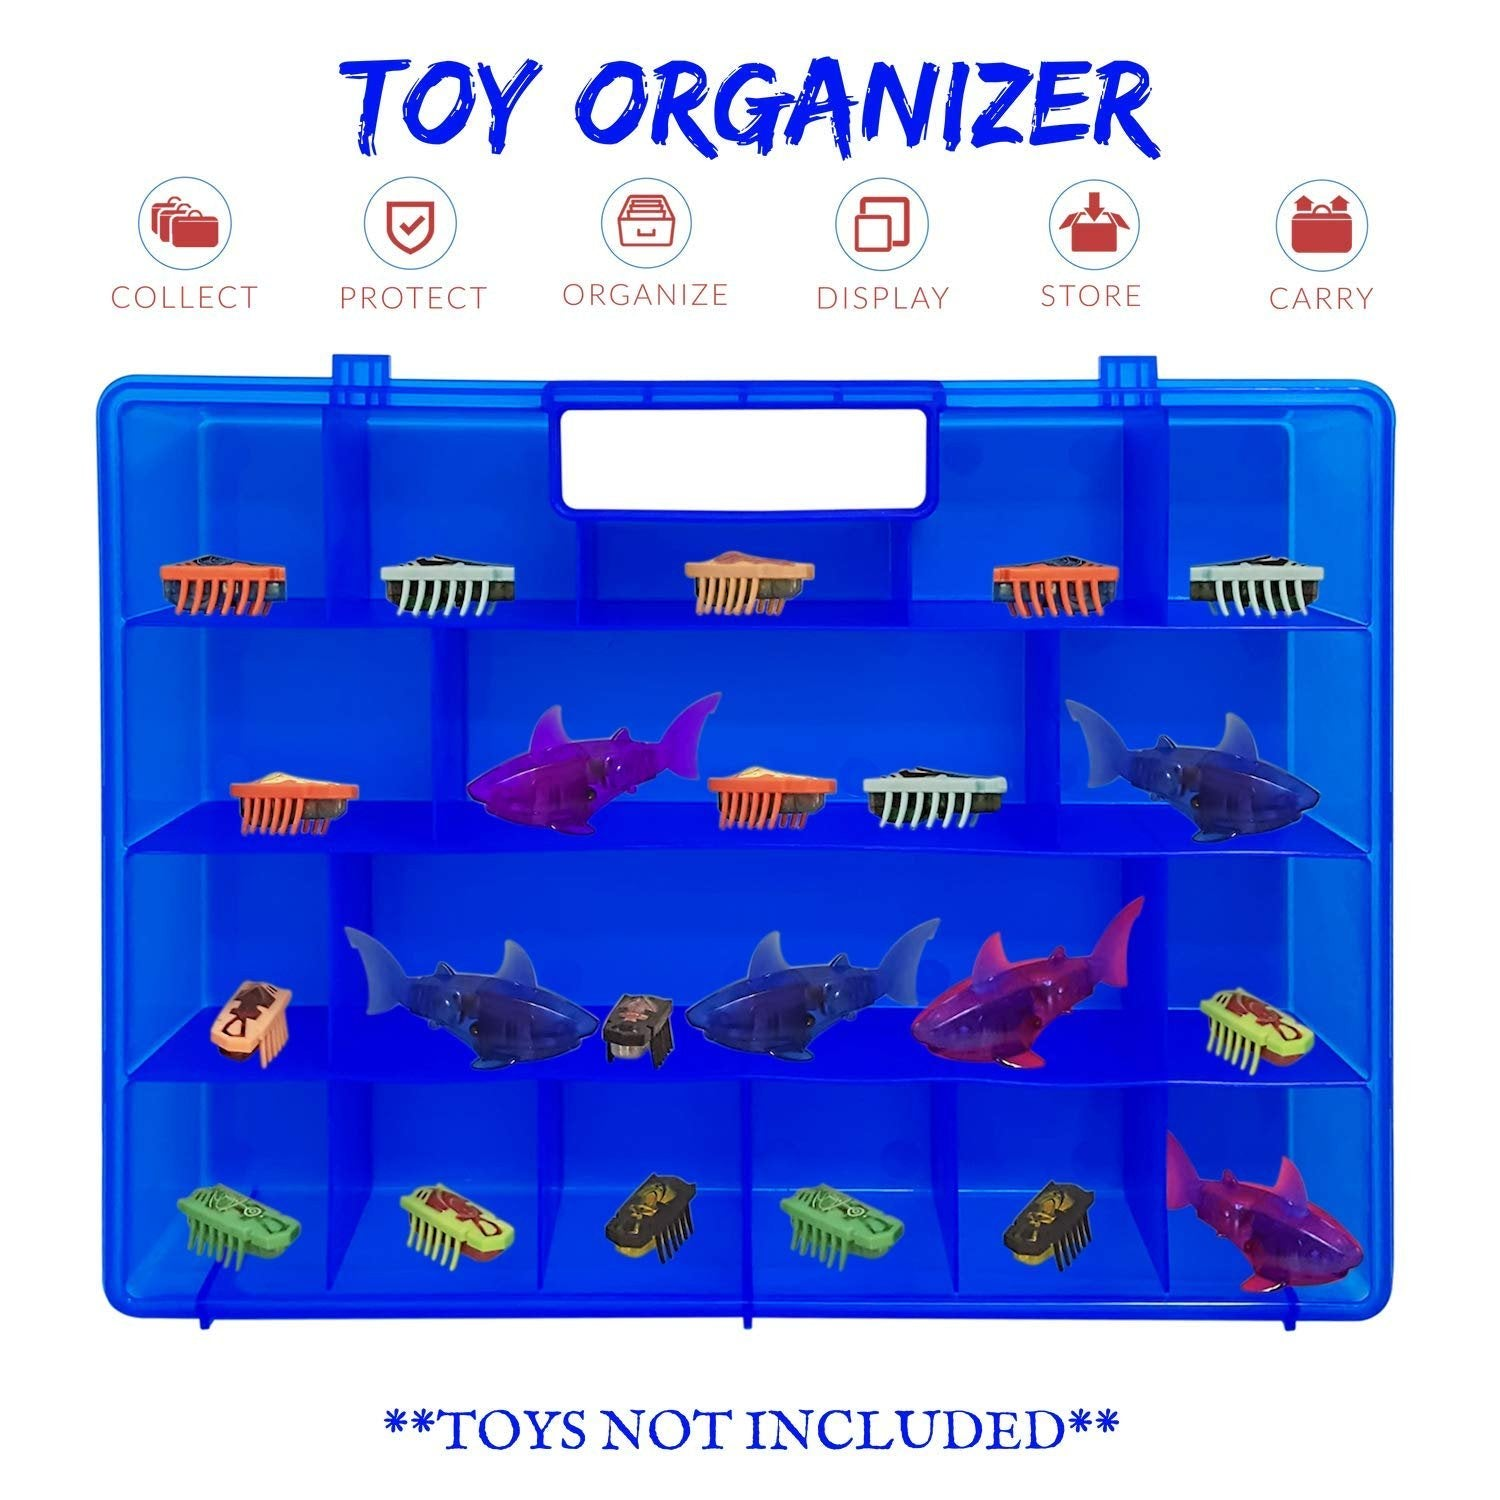 Life Made Better, Enhanced Blue Toy Storage Organizer. Fits Up to 40 Bug Toys, Compatible with Hex Bug TM Toy Figures, Created by LMB